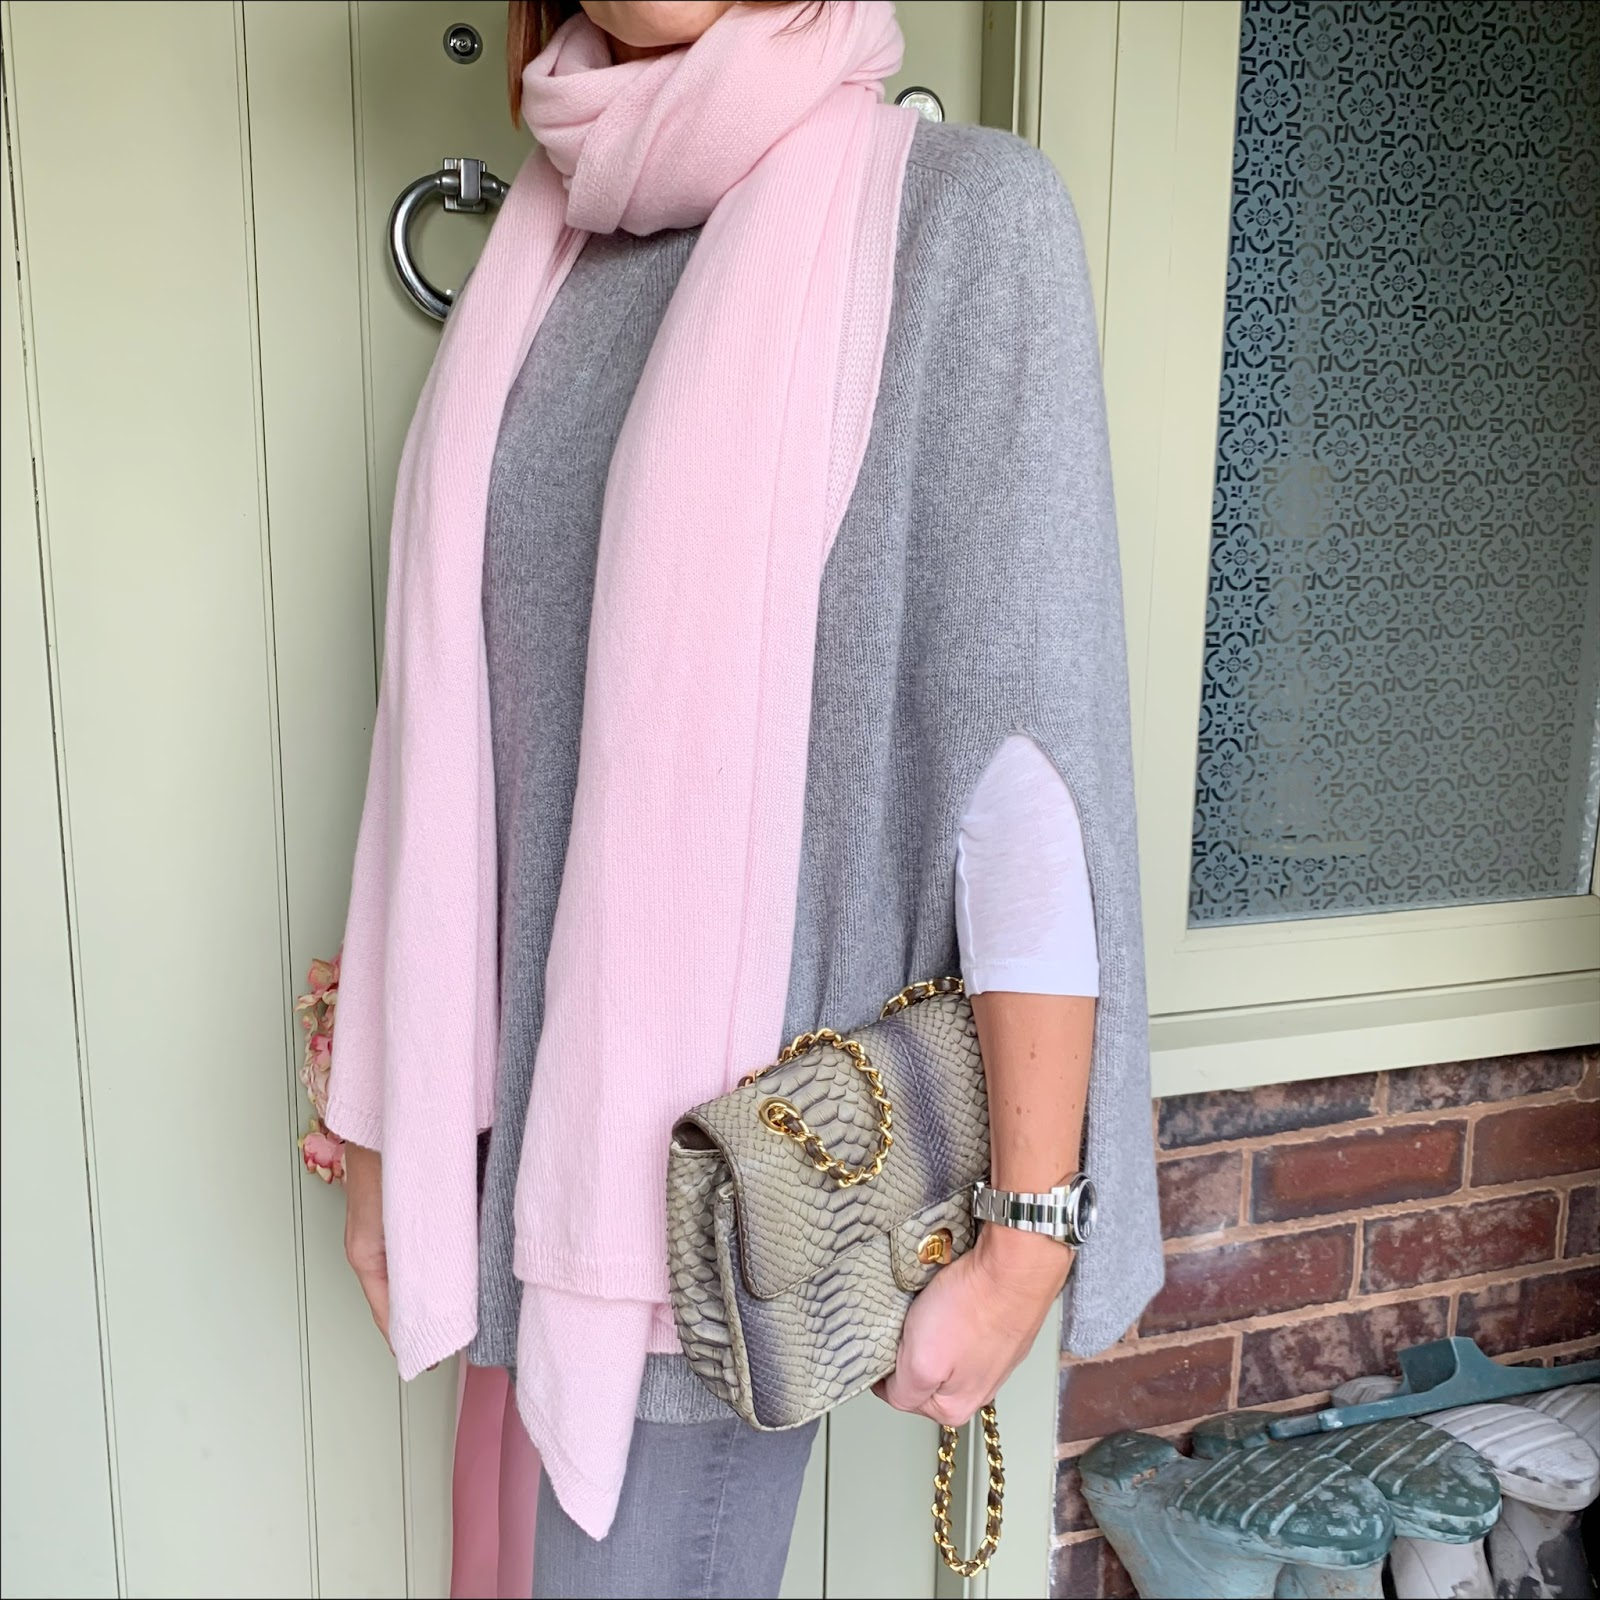 my midlife fashion, italy in cashmere, pure cashmere wrap in baby pink, pure cashmere poncho cape, snakeprint crossbody bag